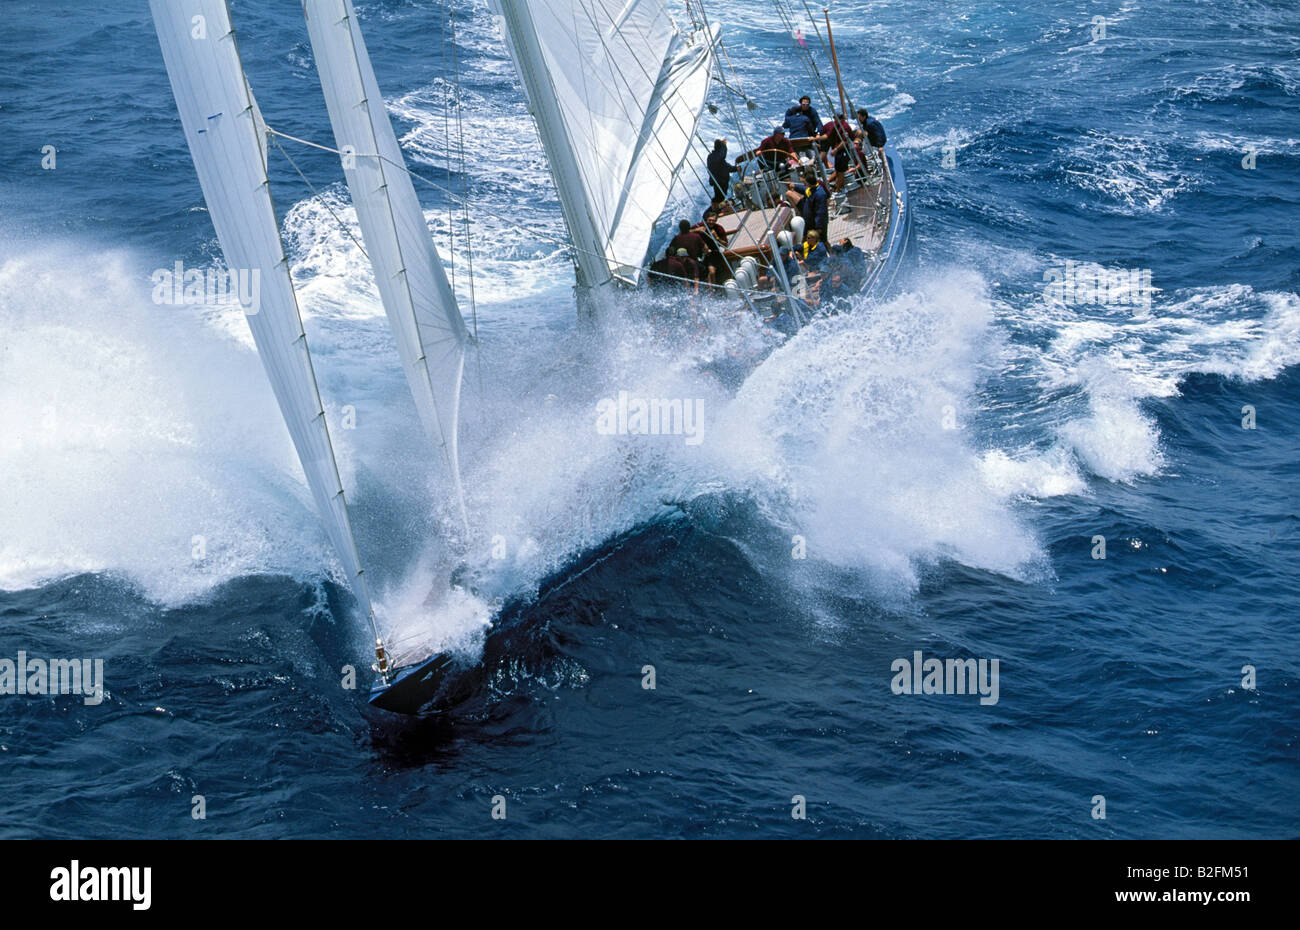 Image result for classic j sailboat in waves